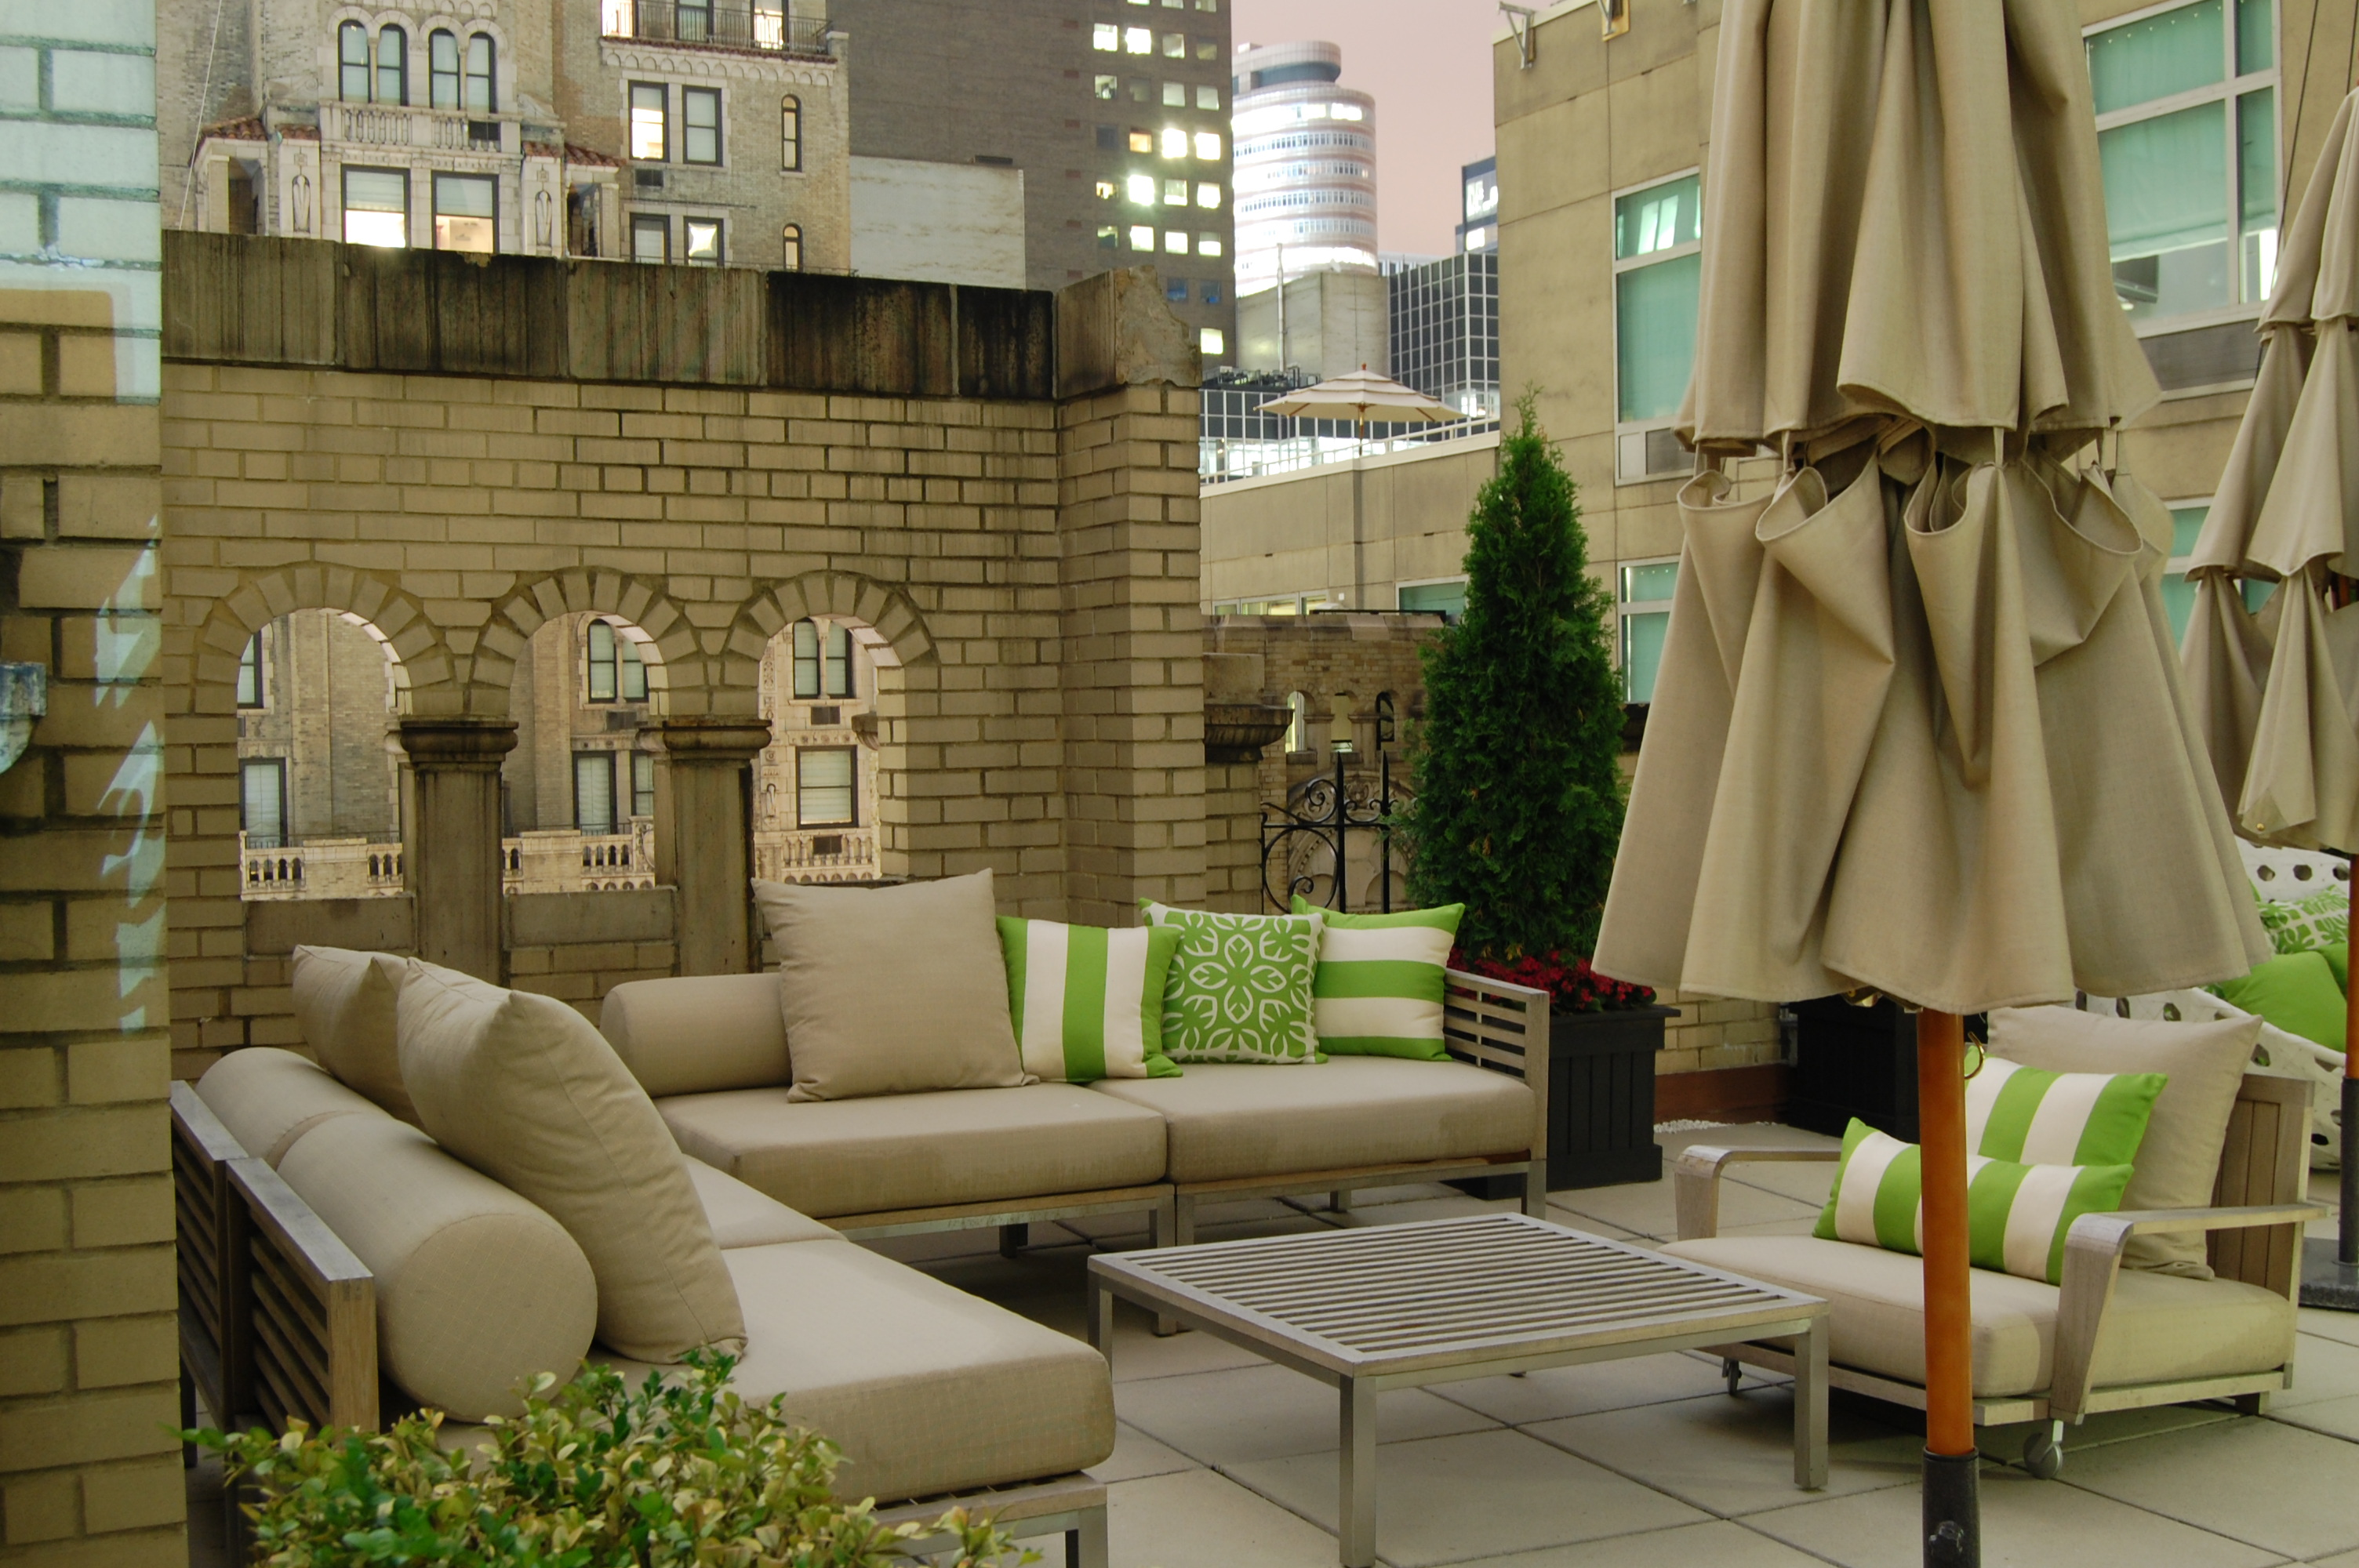 w hotel new york city one sweet terrace i spy nyc